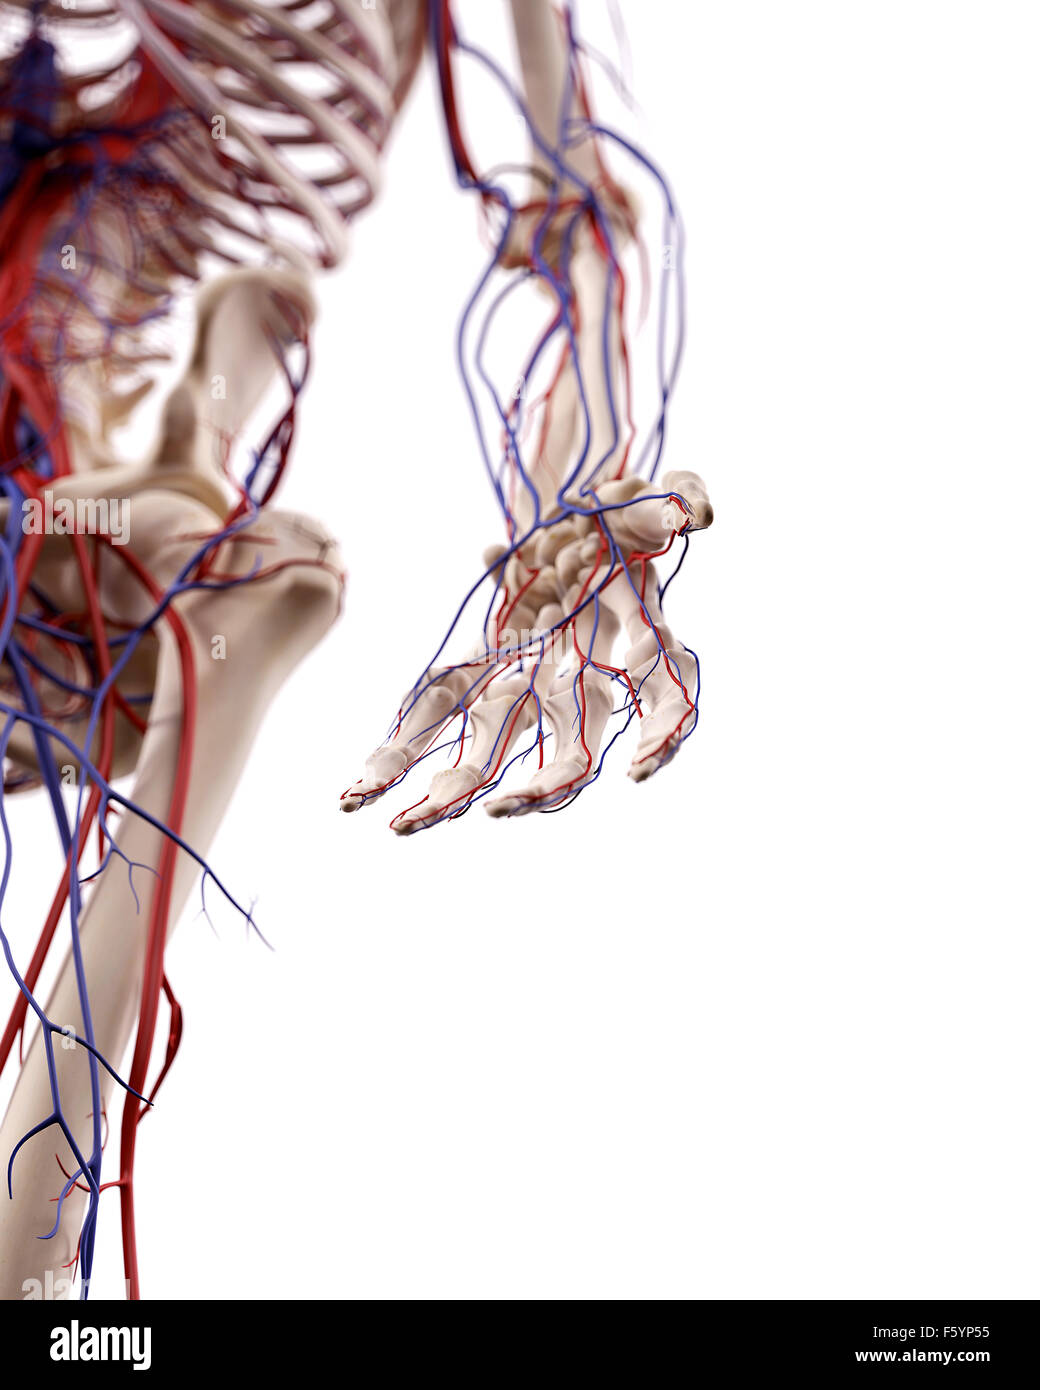 Blood Vessels Arm Stock Photos & Blood Vessels Arm Stock Images - Alamy